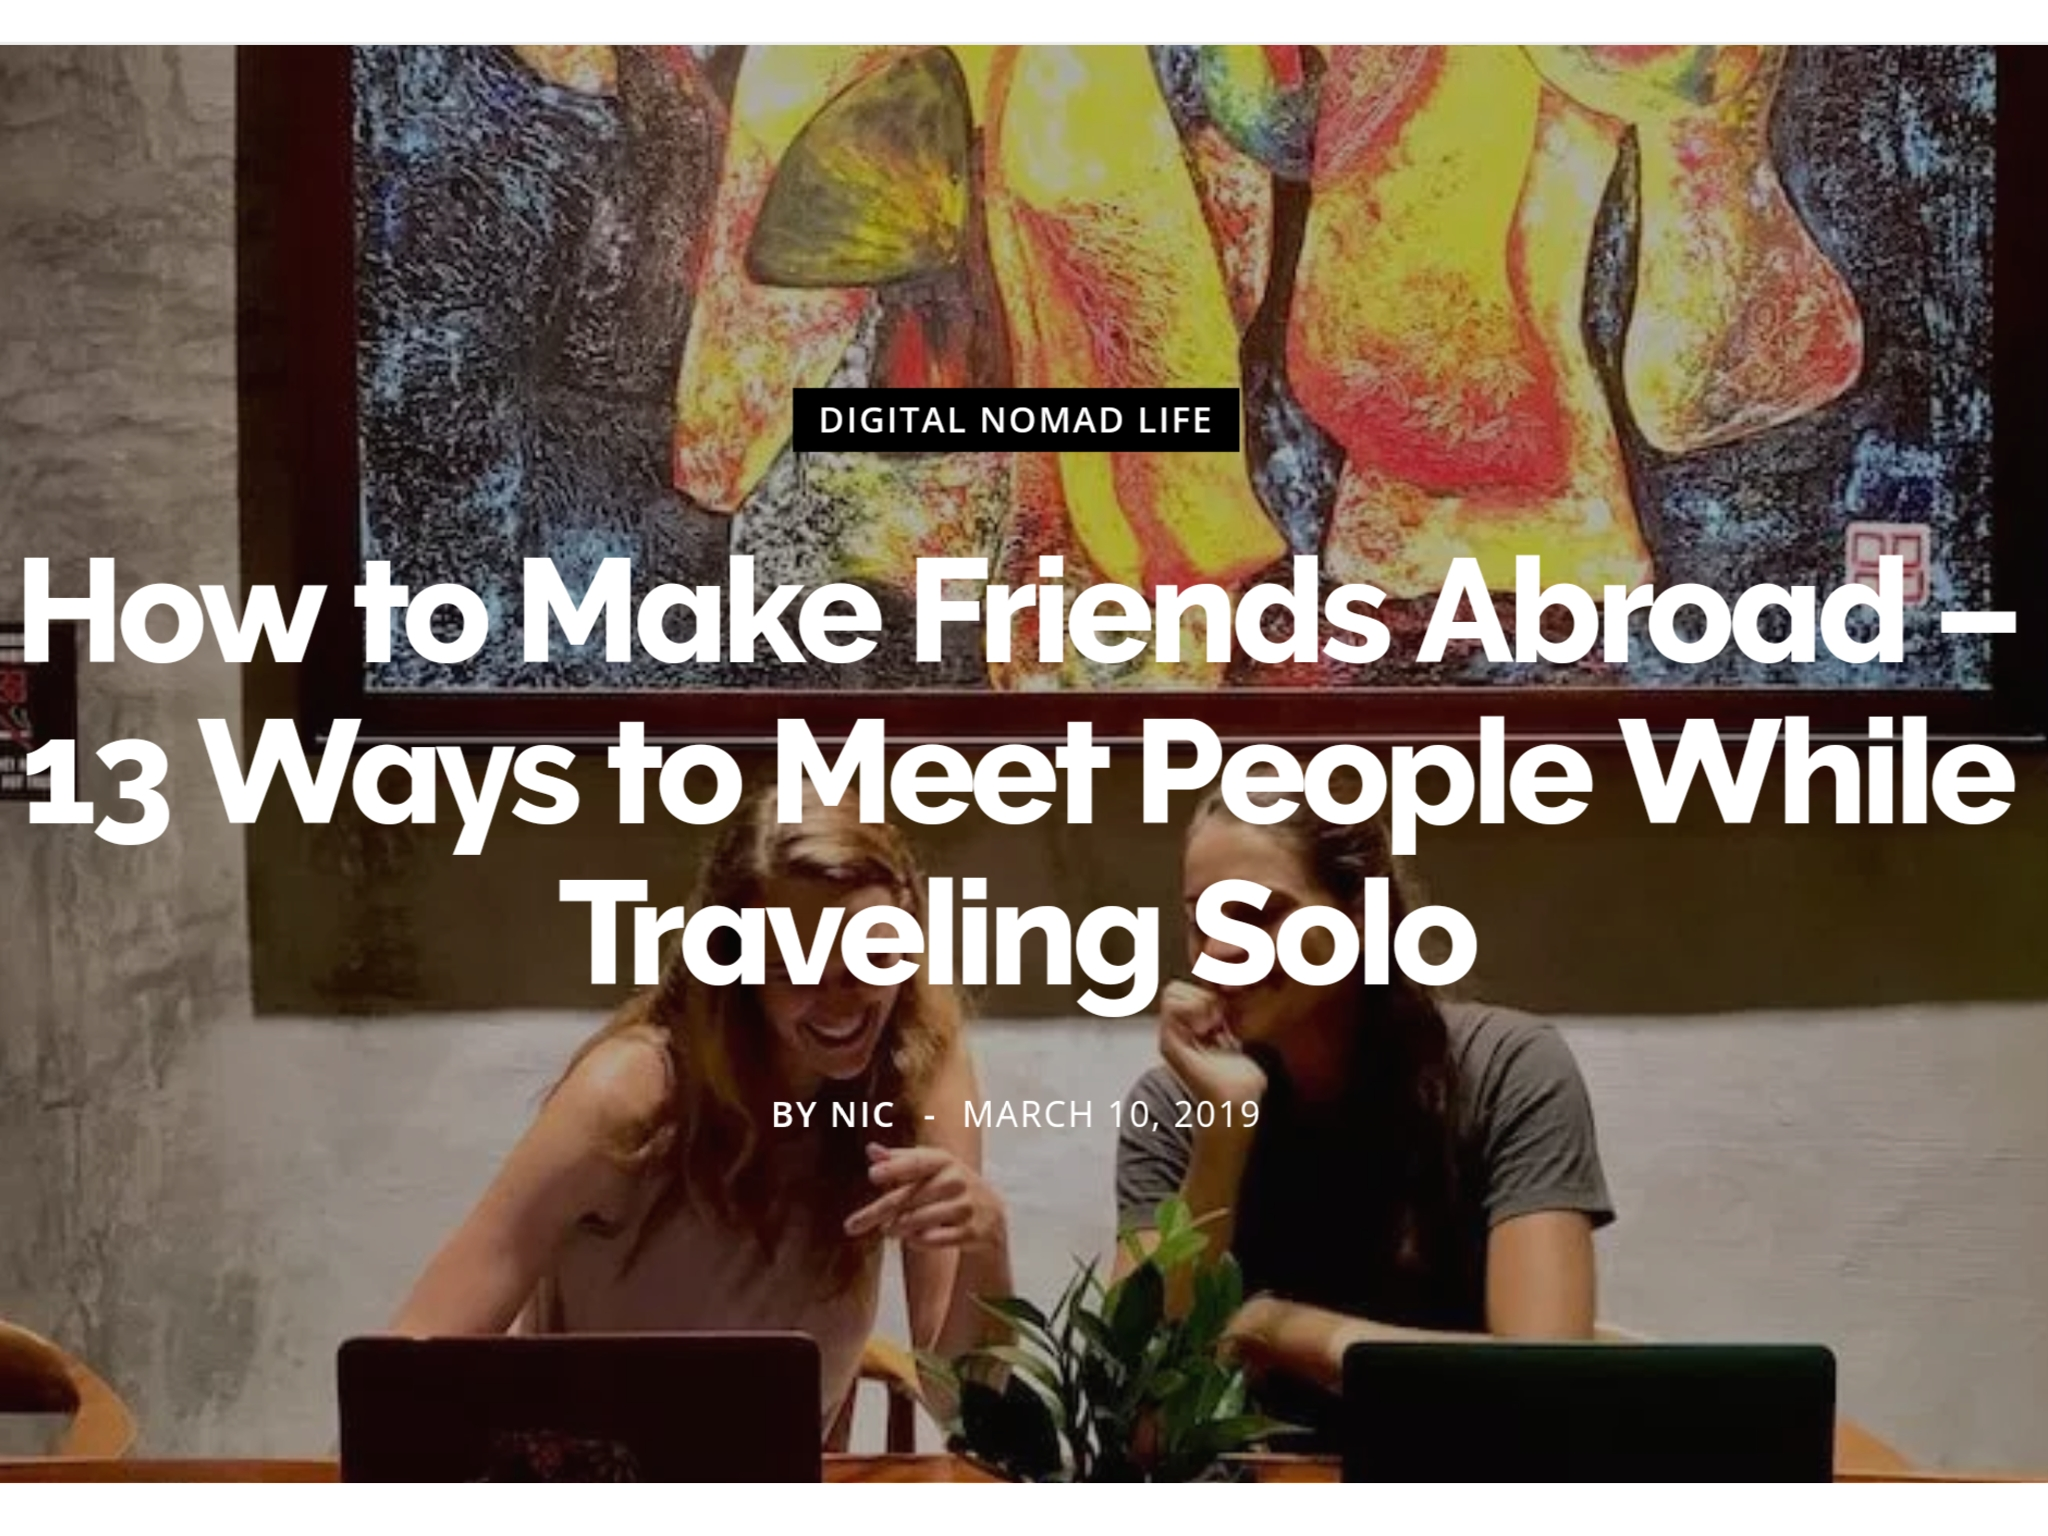 See Nic Wander - How to Make Friends Abroad